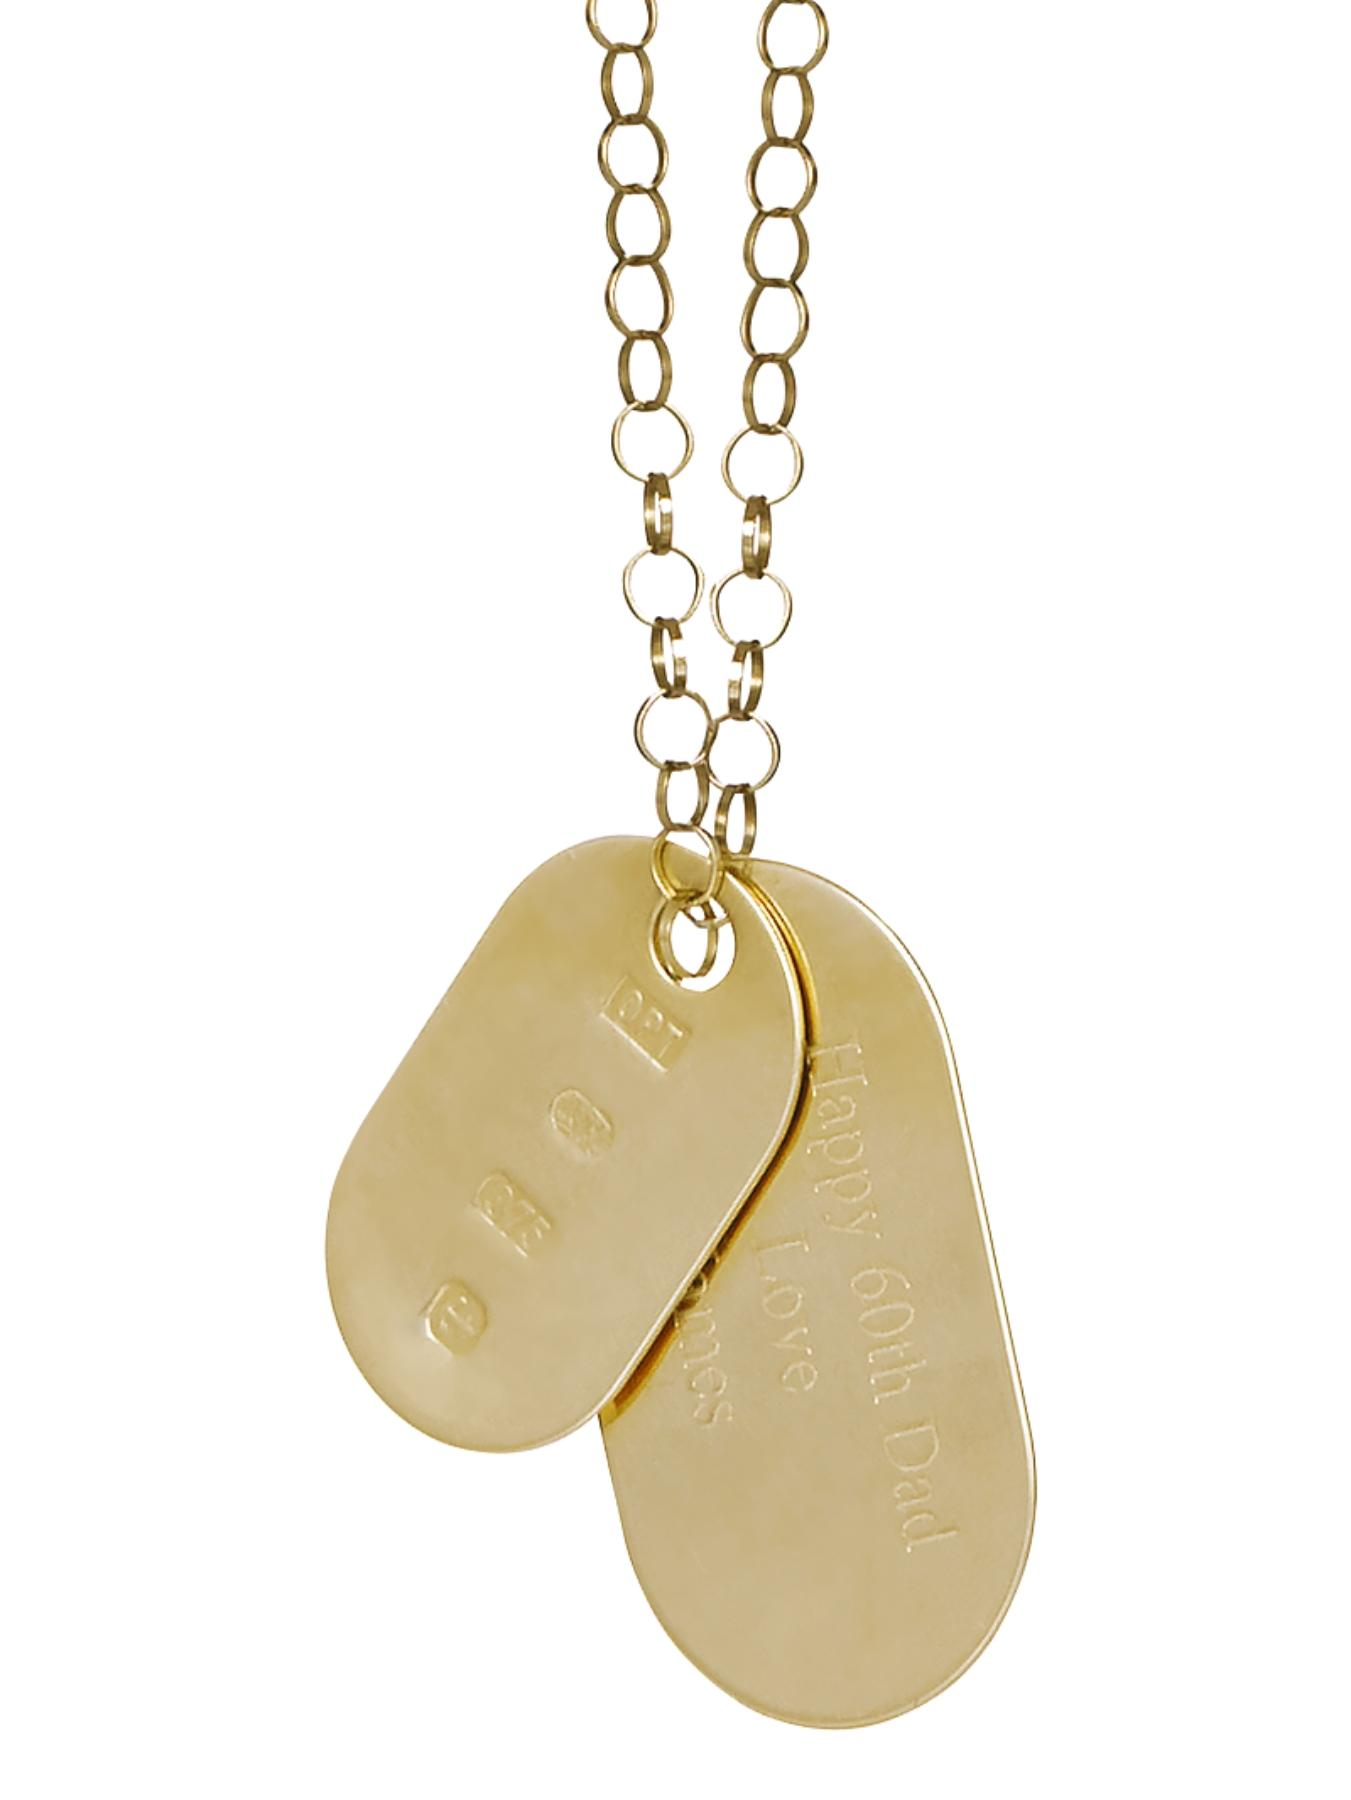 Personalised 9 Carat Yellow Gold Double Dog Tag Pendant